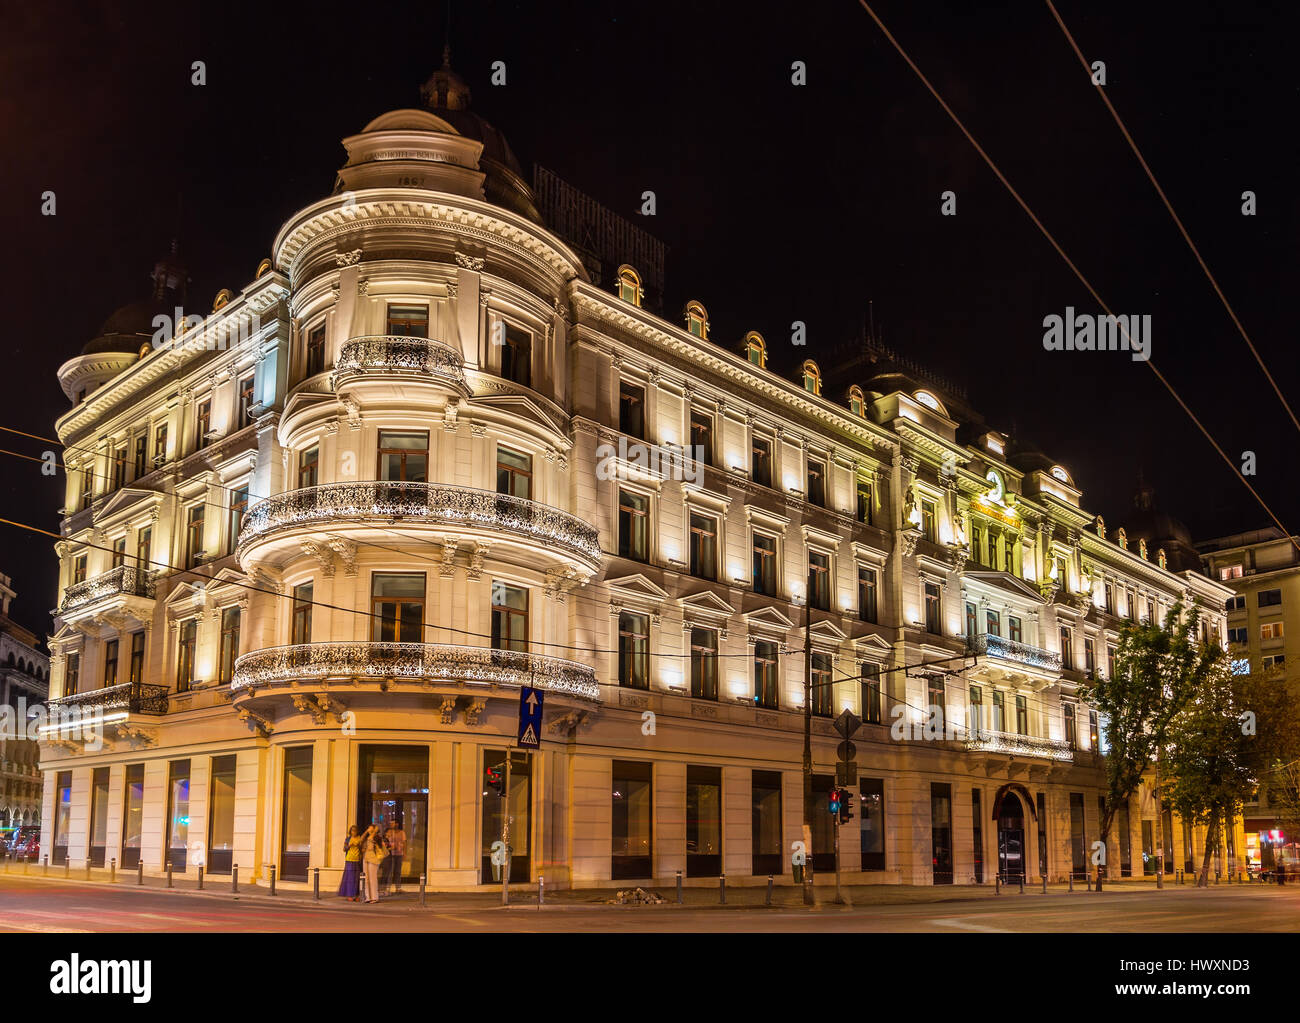 grand hotel du boulevard in bucharest a romanian historic monum stock photo 136426559 alamy. Black Bedroom Furniture Sets. Home Design Ideas